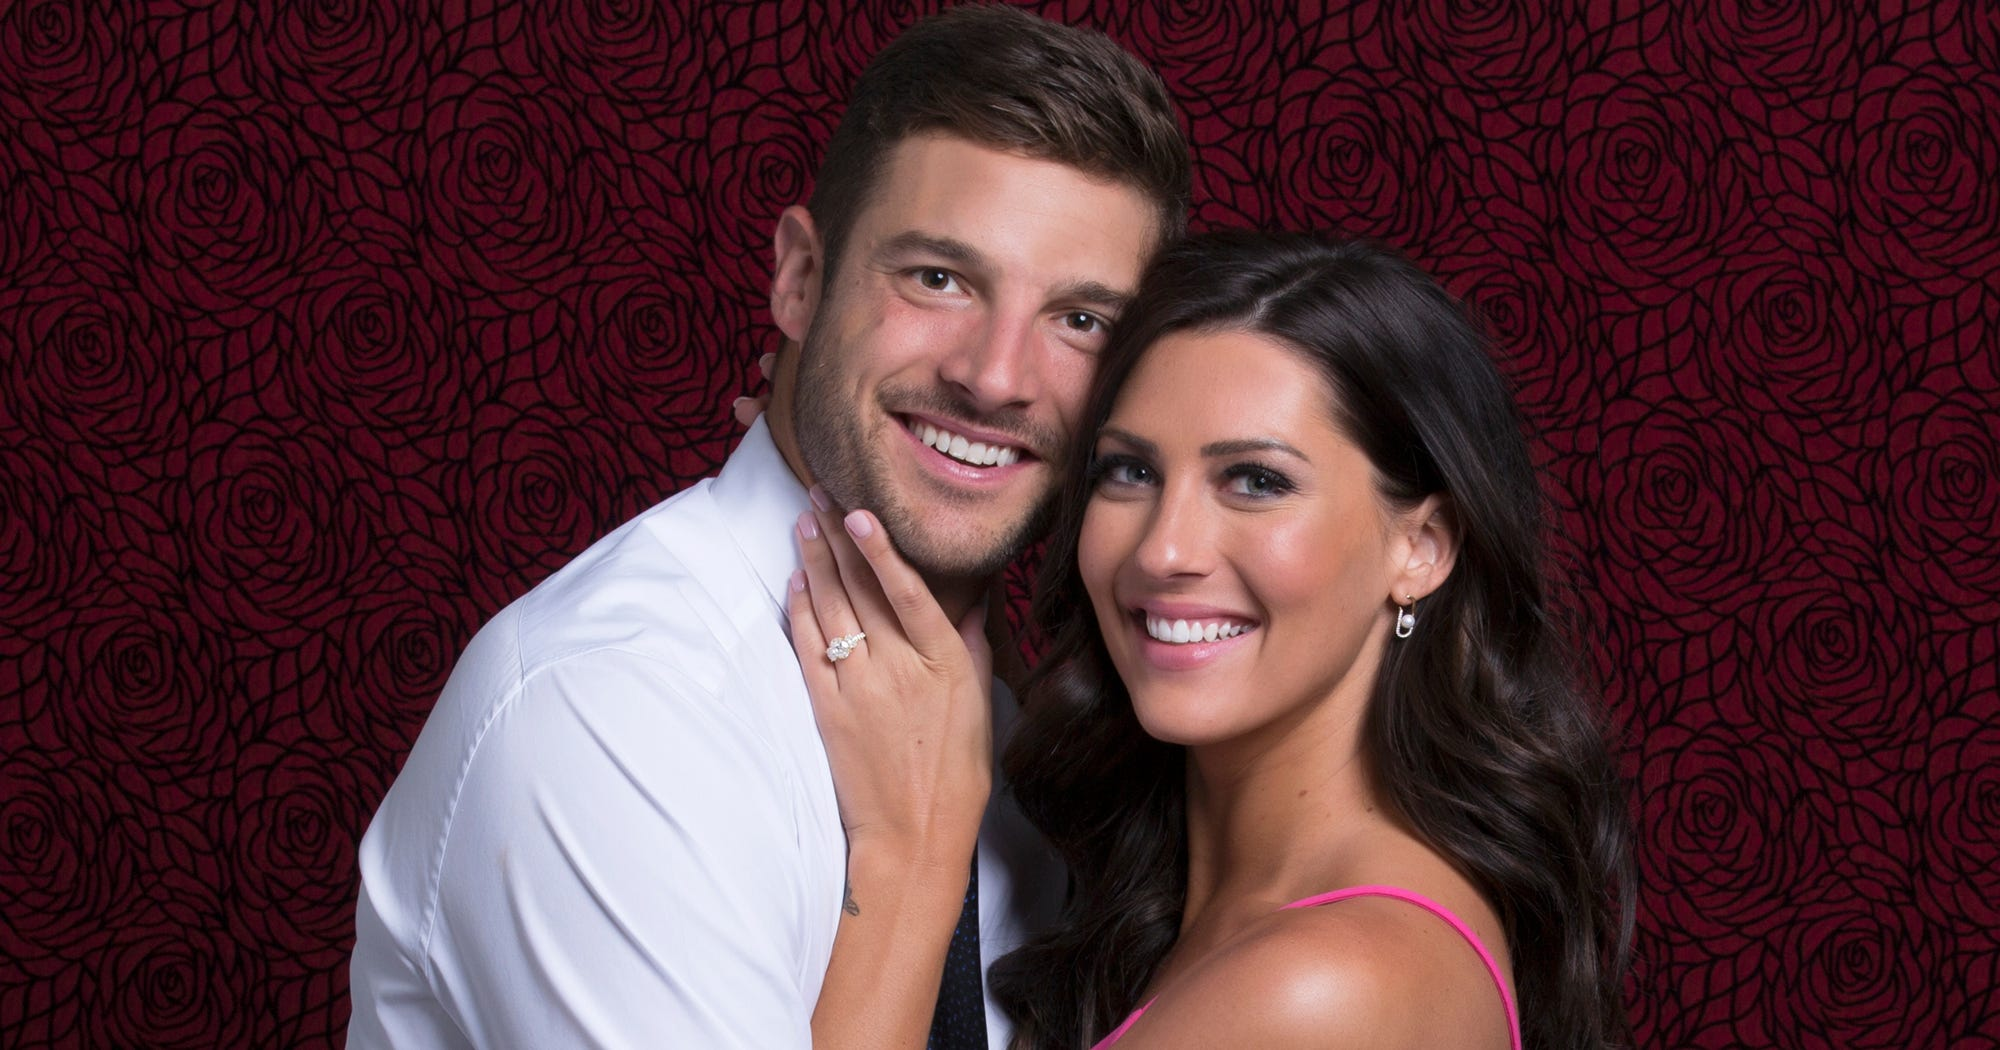 abc dating in the dark couples update